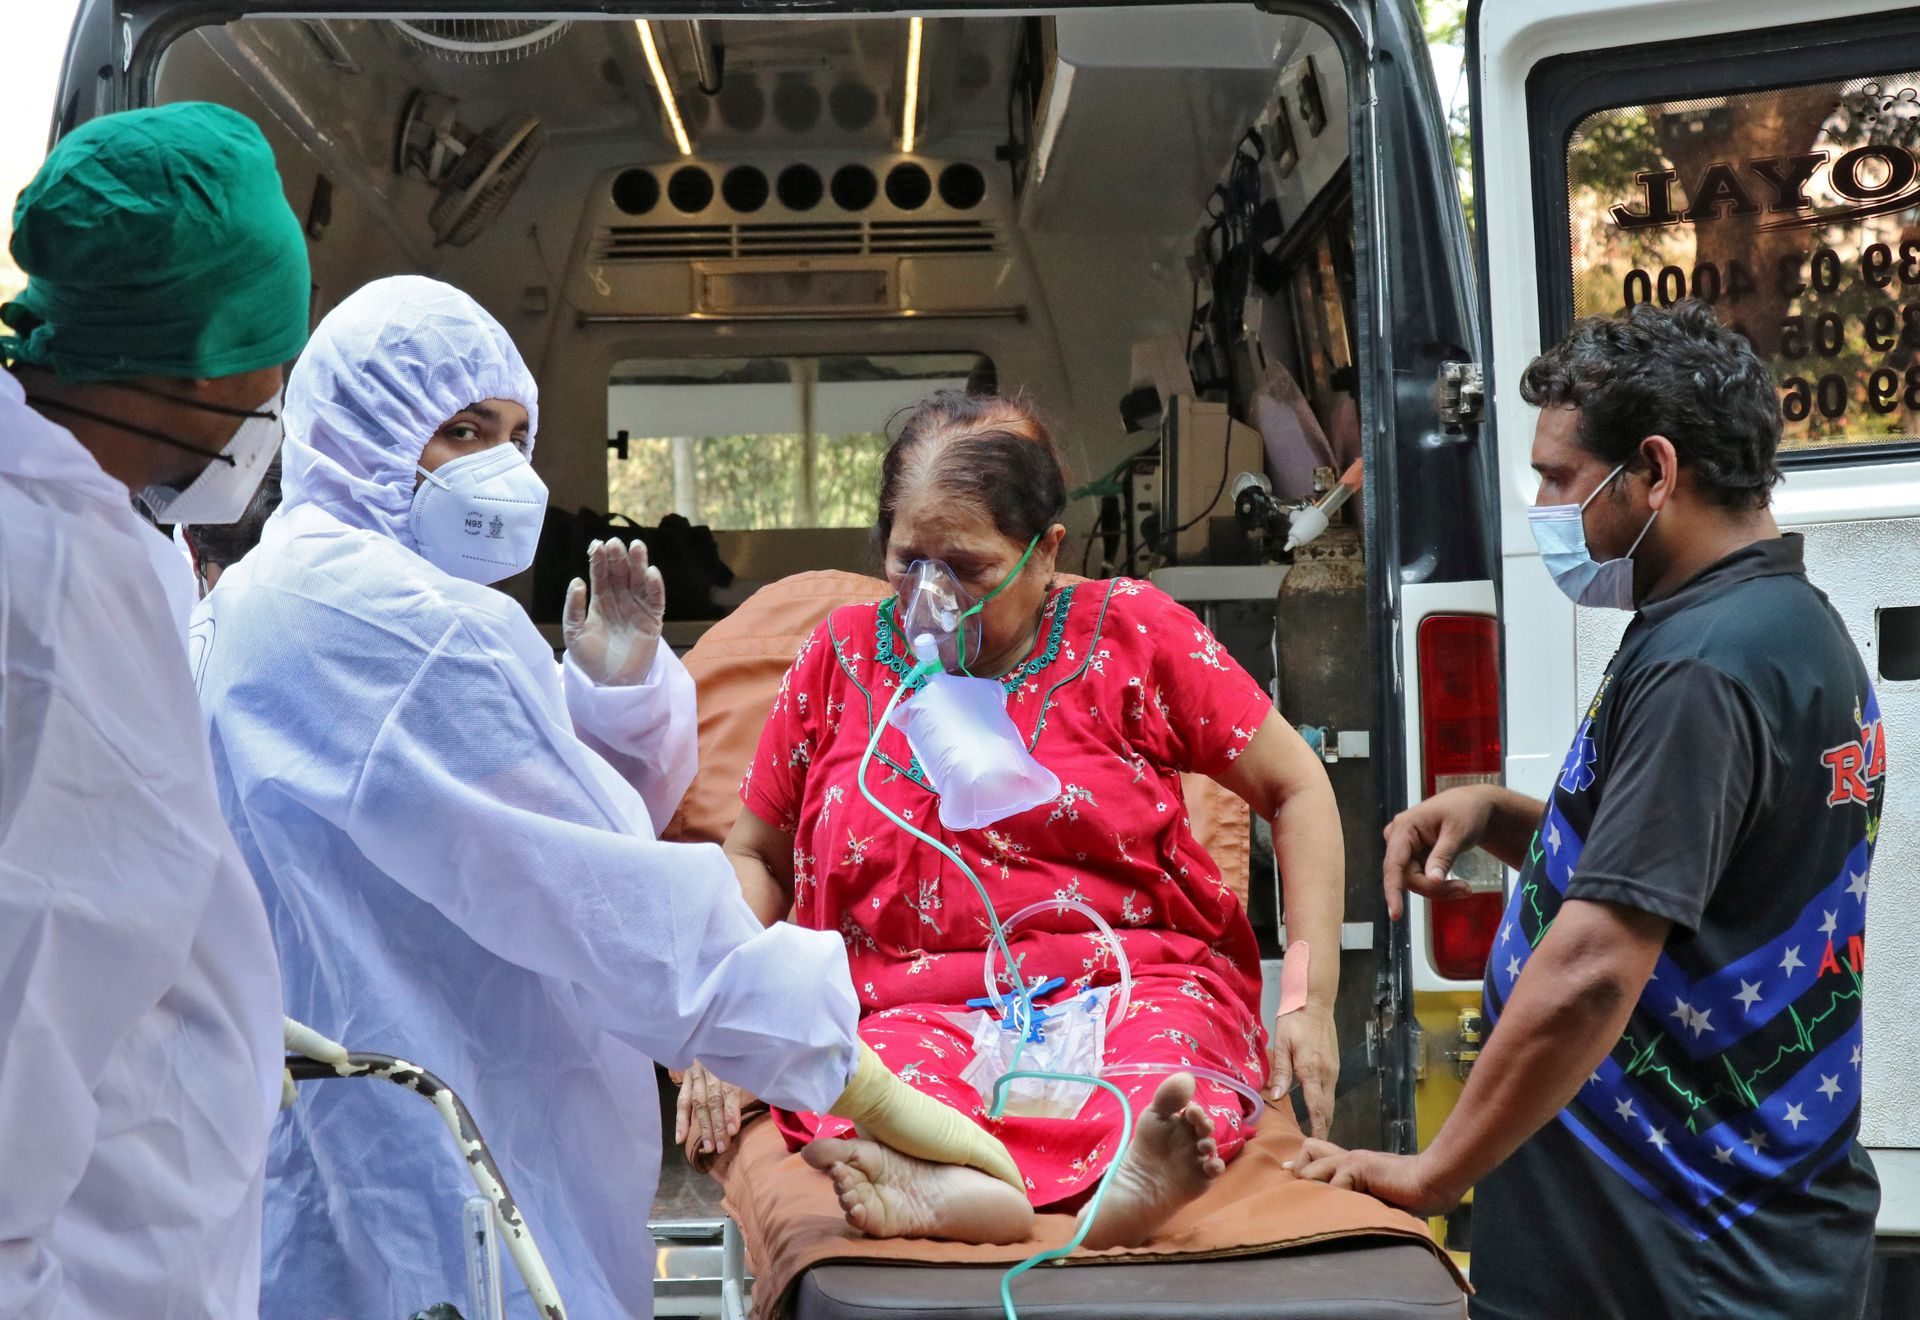 Healthcare workers and relatives carry a woman from an ambulance for treatment at a COVID-19 care facility, amidst the spread of the coronavirus disease (COVID-19) in Mumbai, India, May 4, 2021. Photo: Reuters